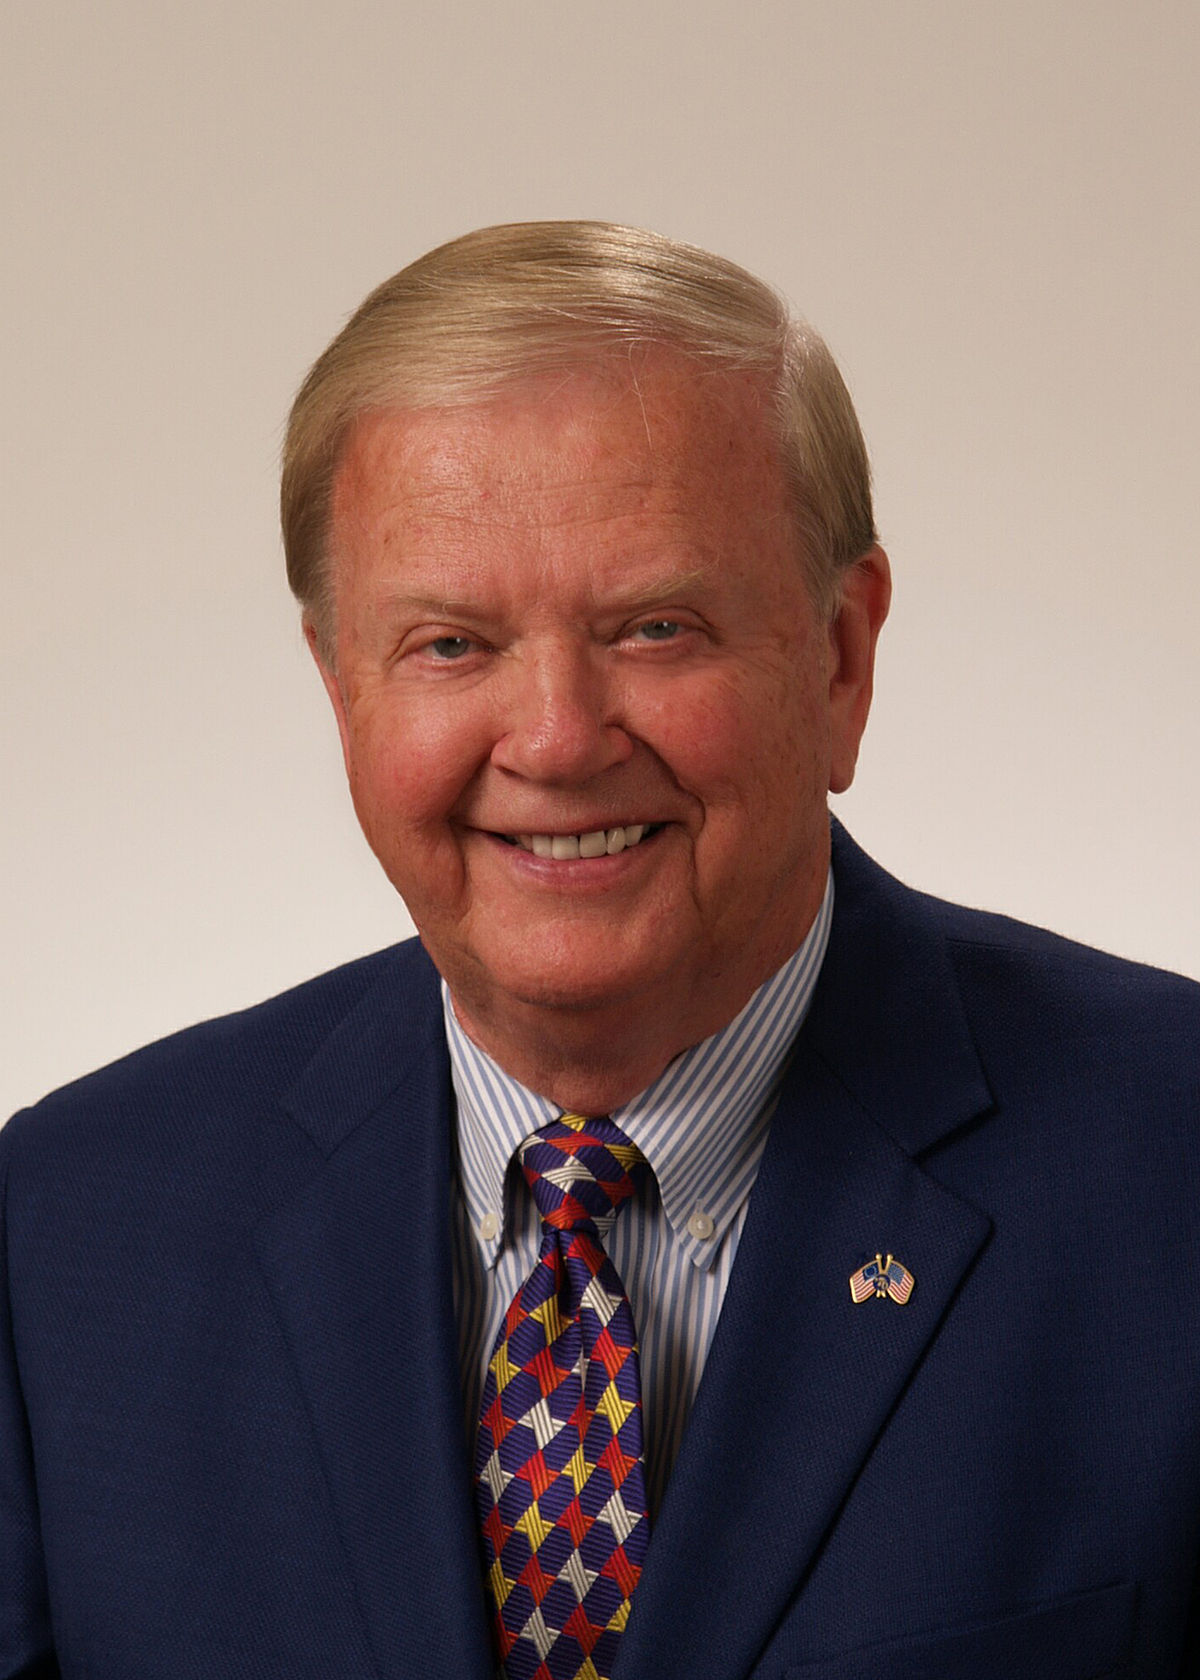 What Is Considered Dairy >> Orion Samuelson - Wikipedia